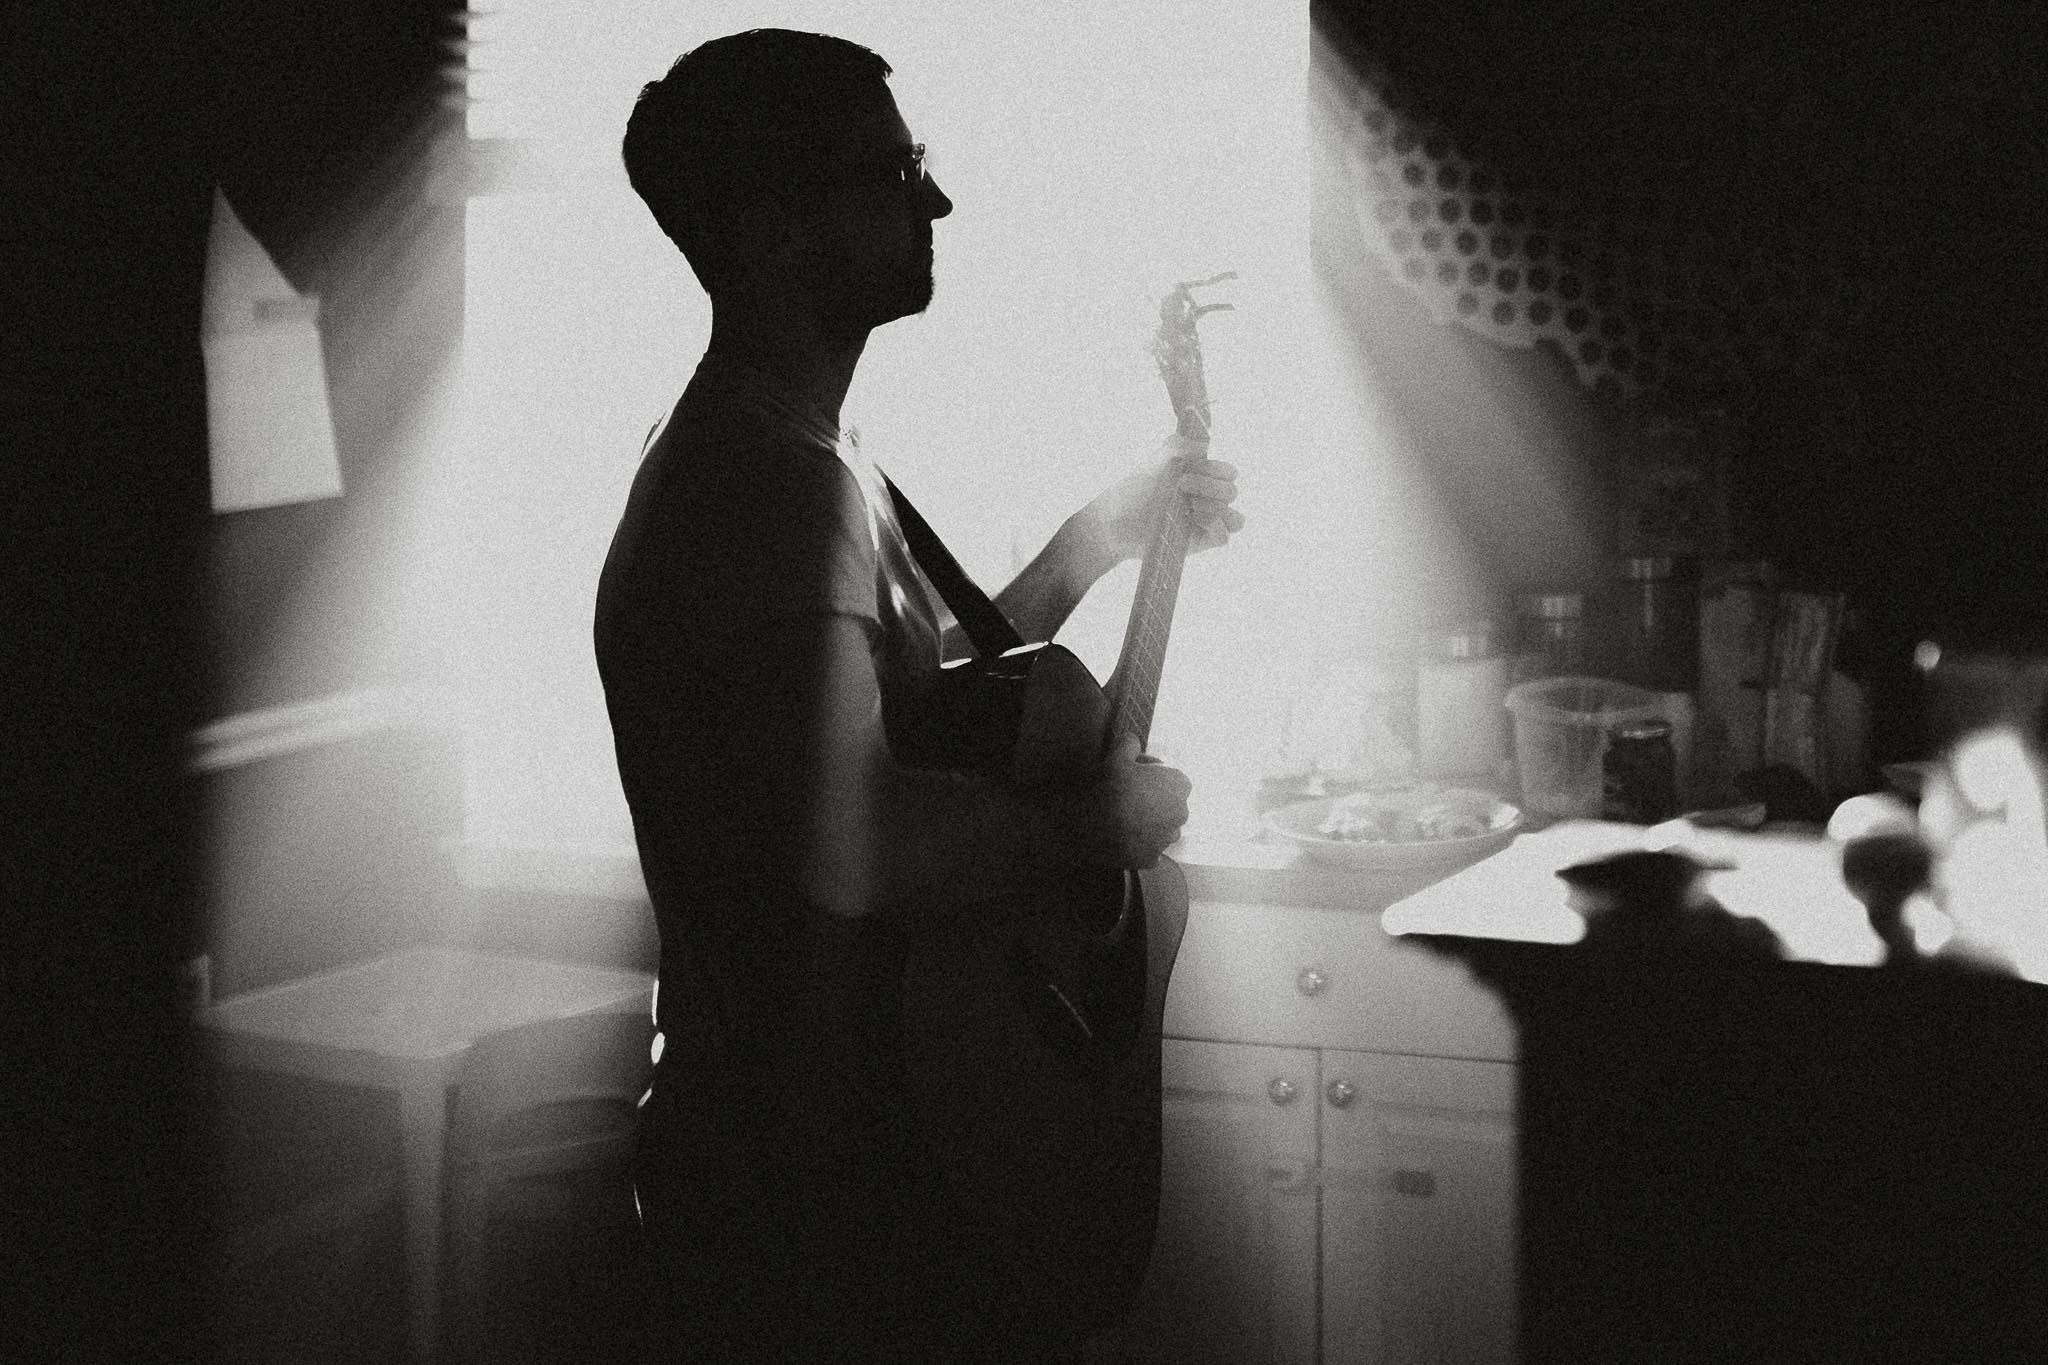 Black and white silhouette of a man playing guitar in a room filled with sun beams